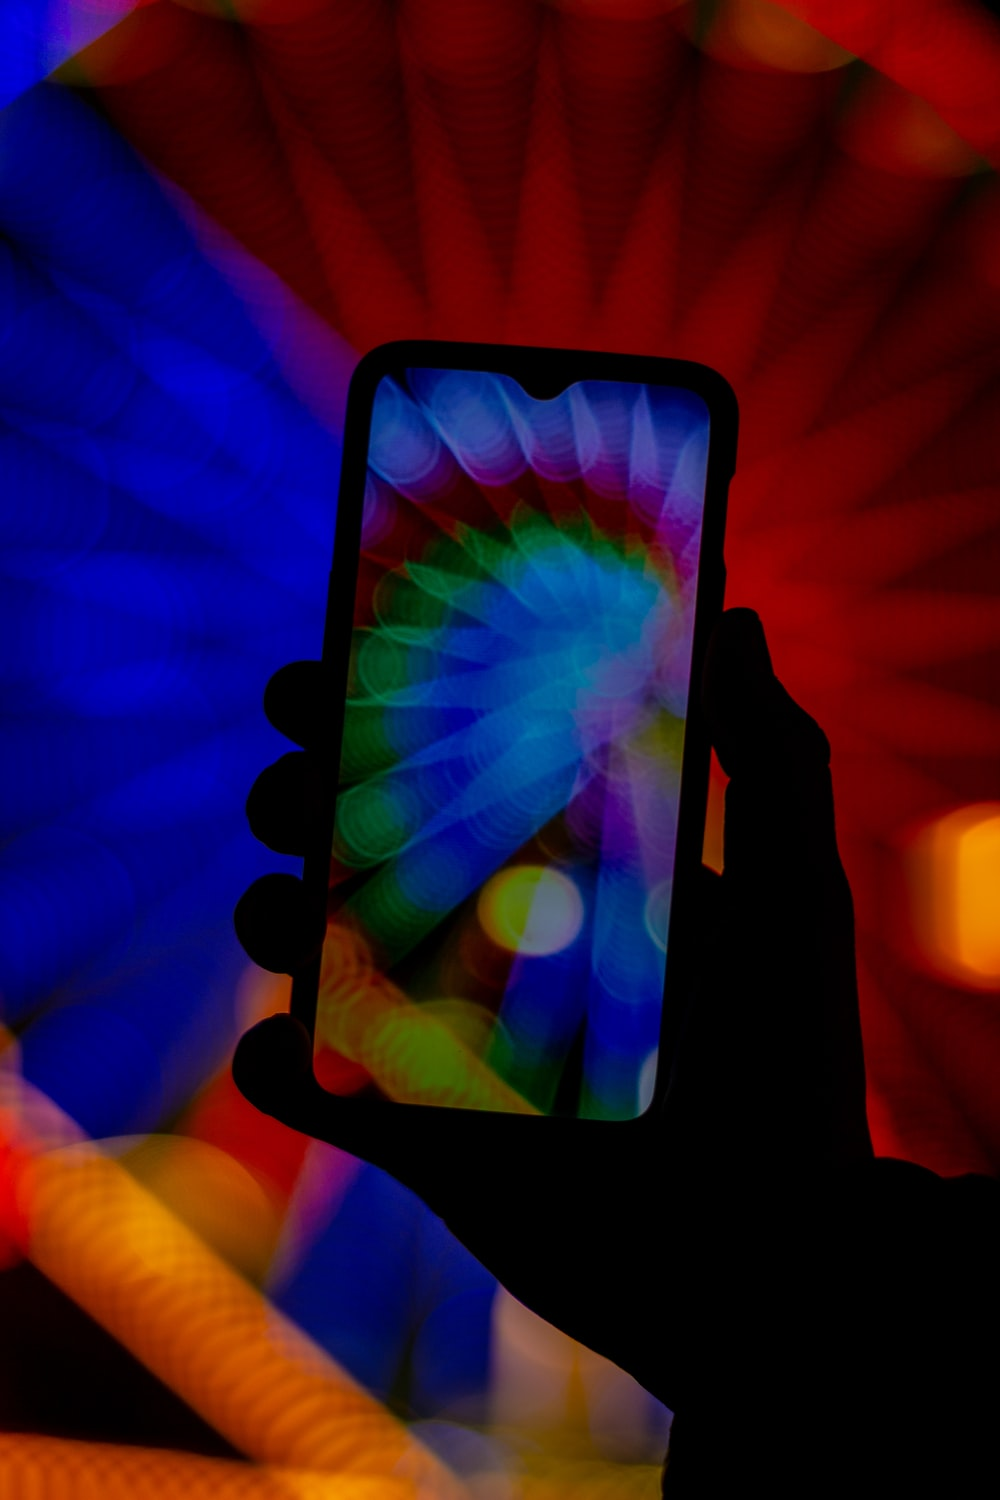 black smartphone displaying multicolored wallpaper